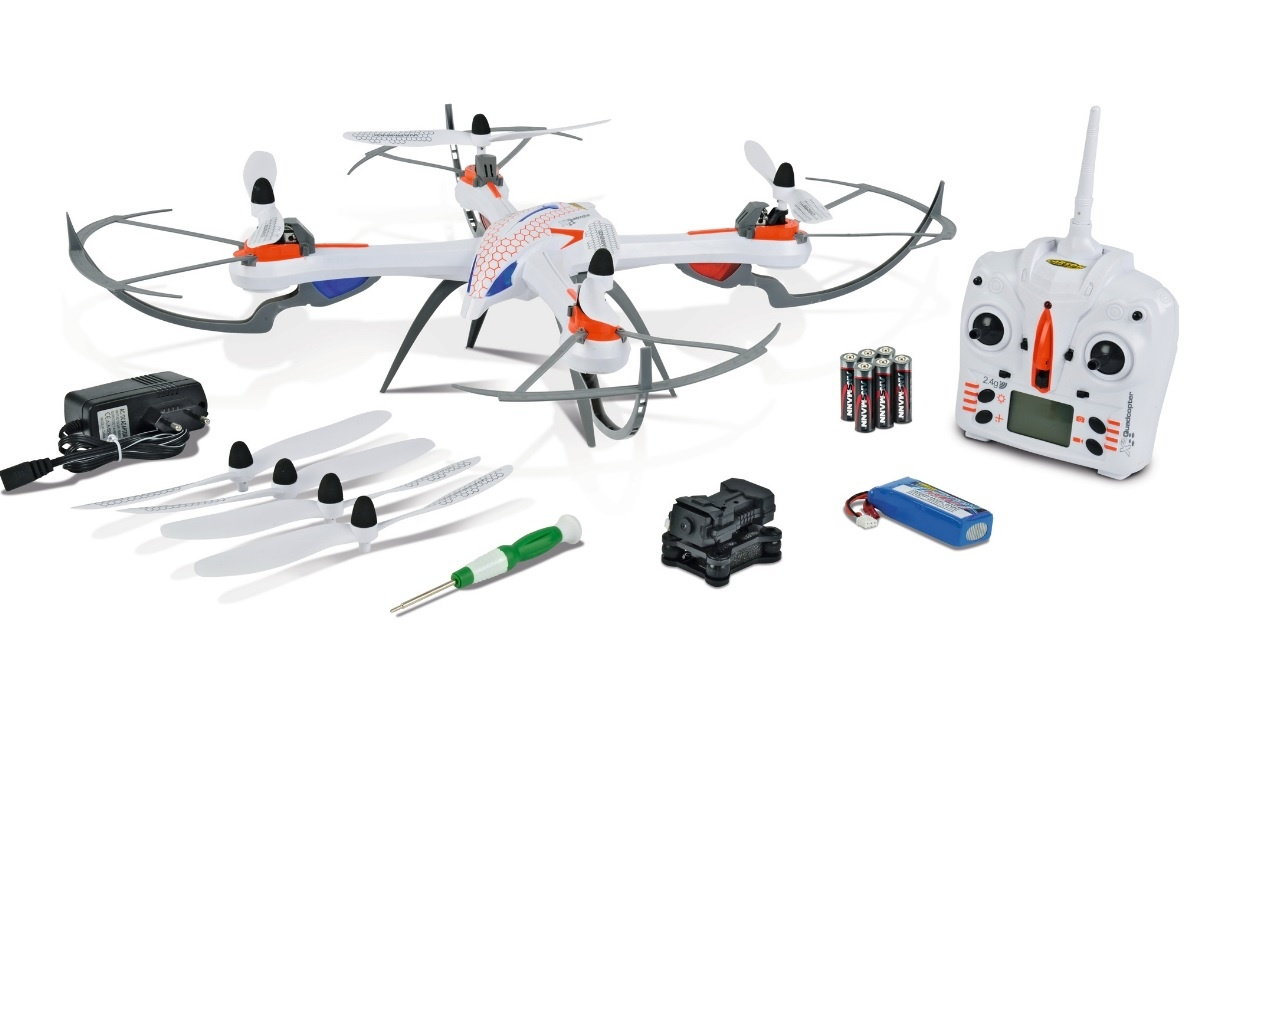 X4 Quadcopter 550 SPY 2.4G 100% RTR